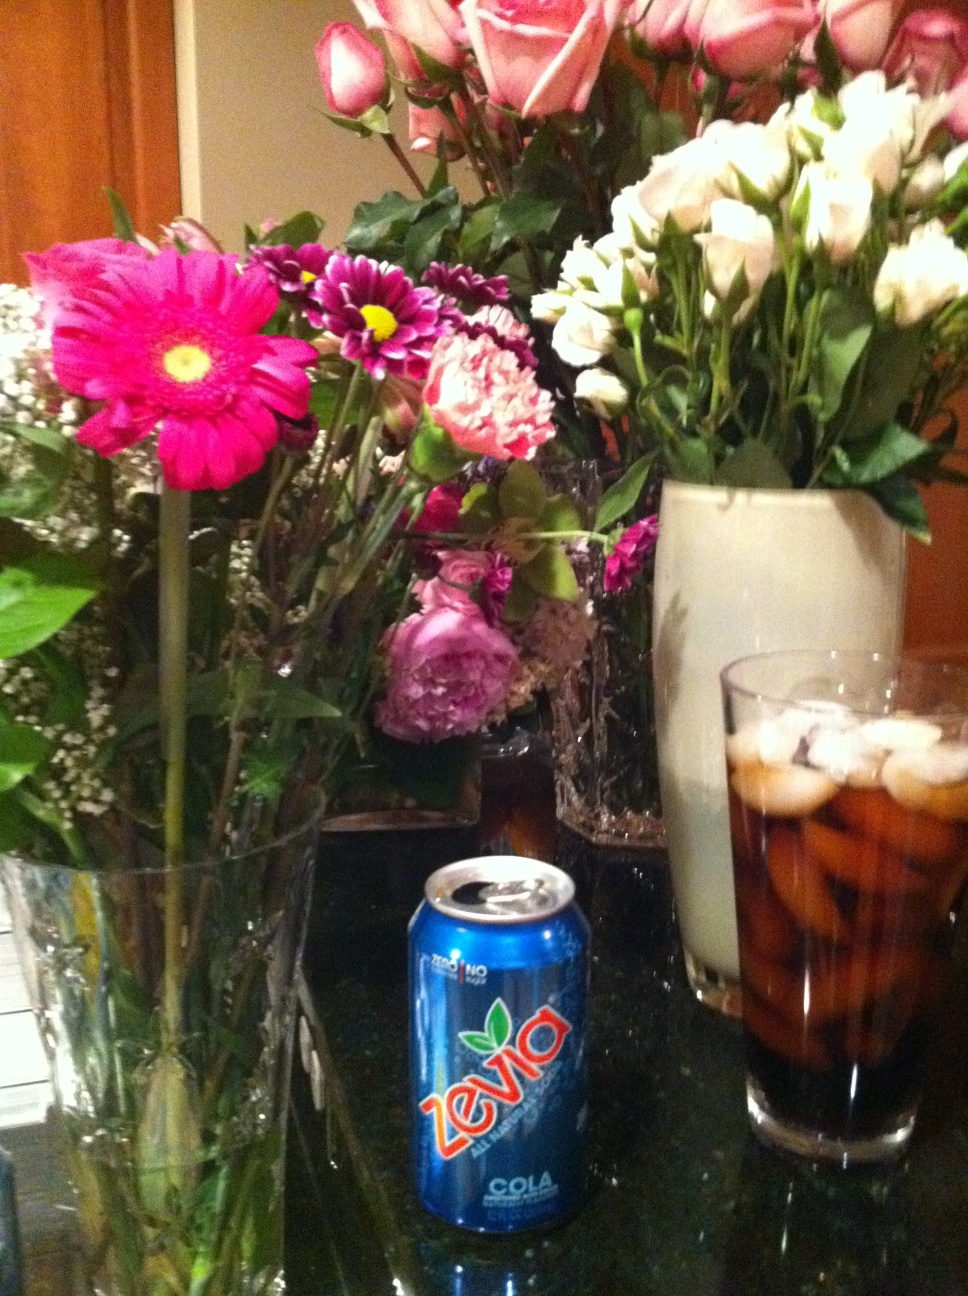 Hey @Zevia - just tried ur zero calorie soda for the first time. Its good. Also added flowers that were laying around